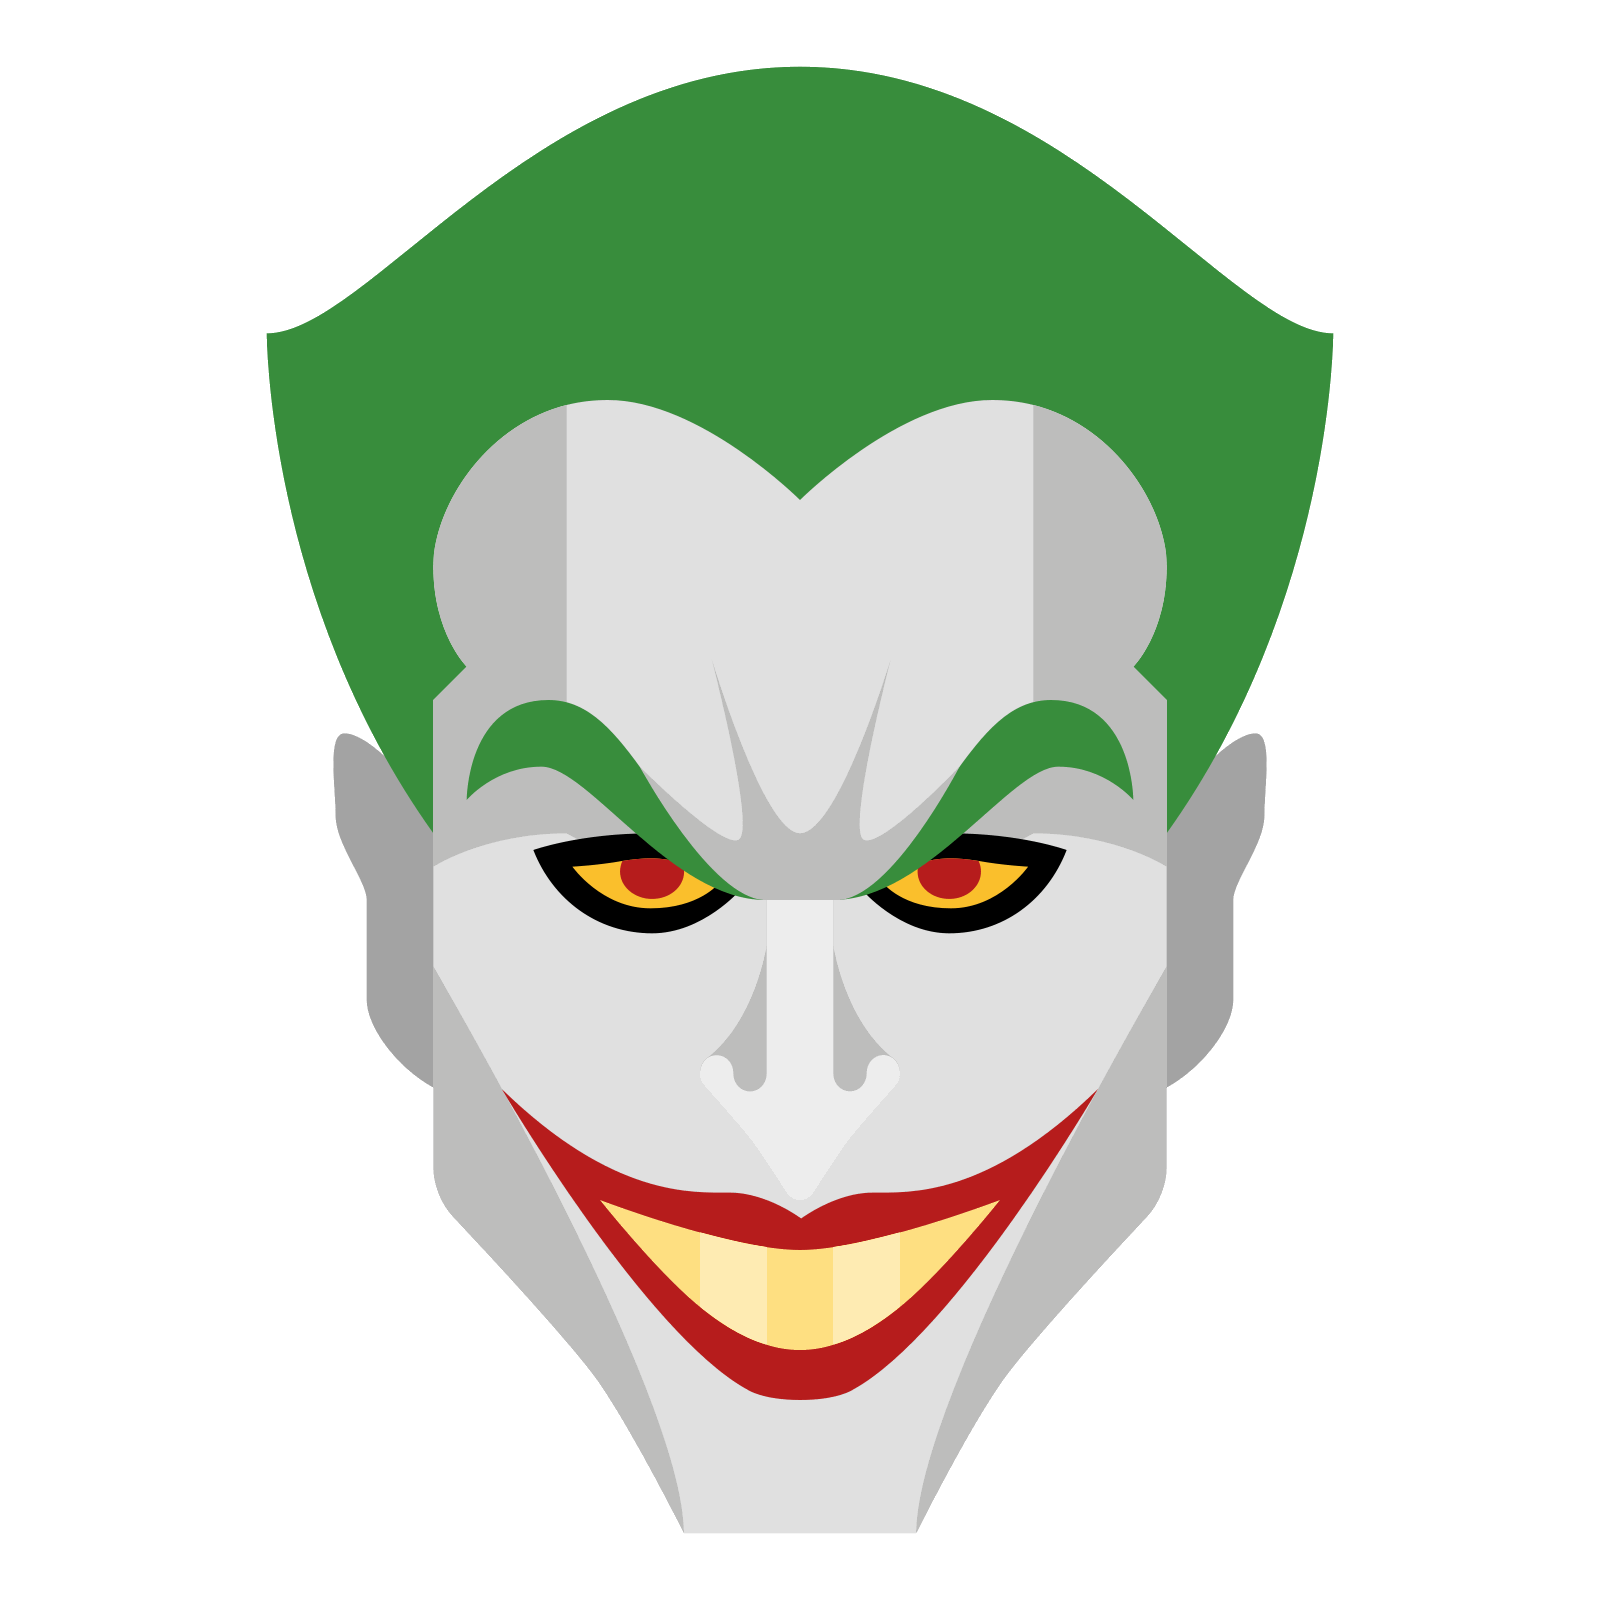 All free download png. Joker dc icon and